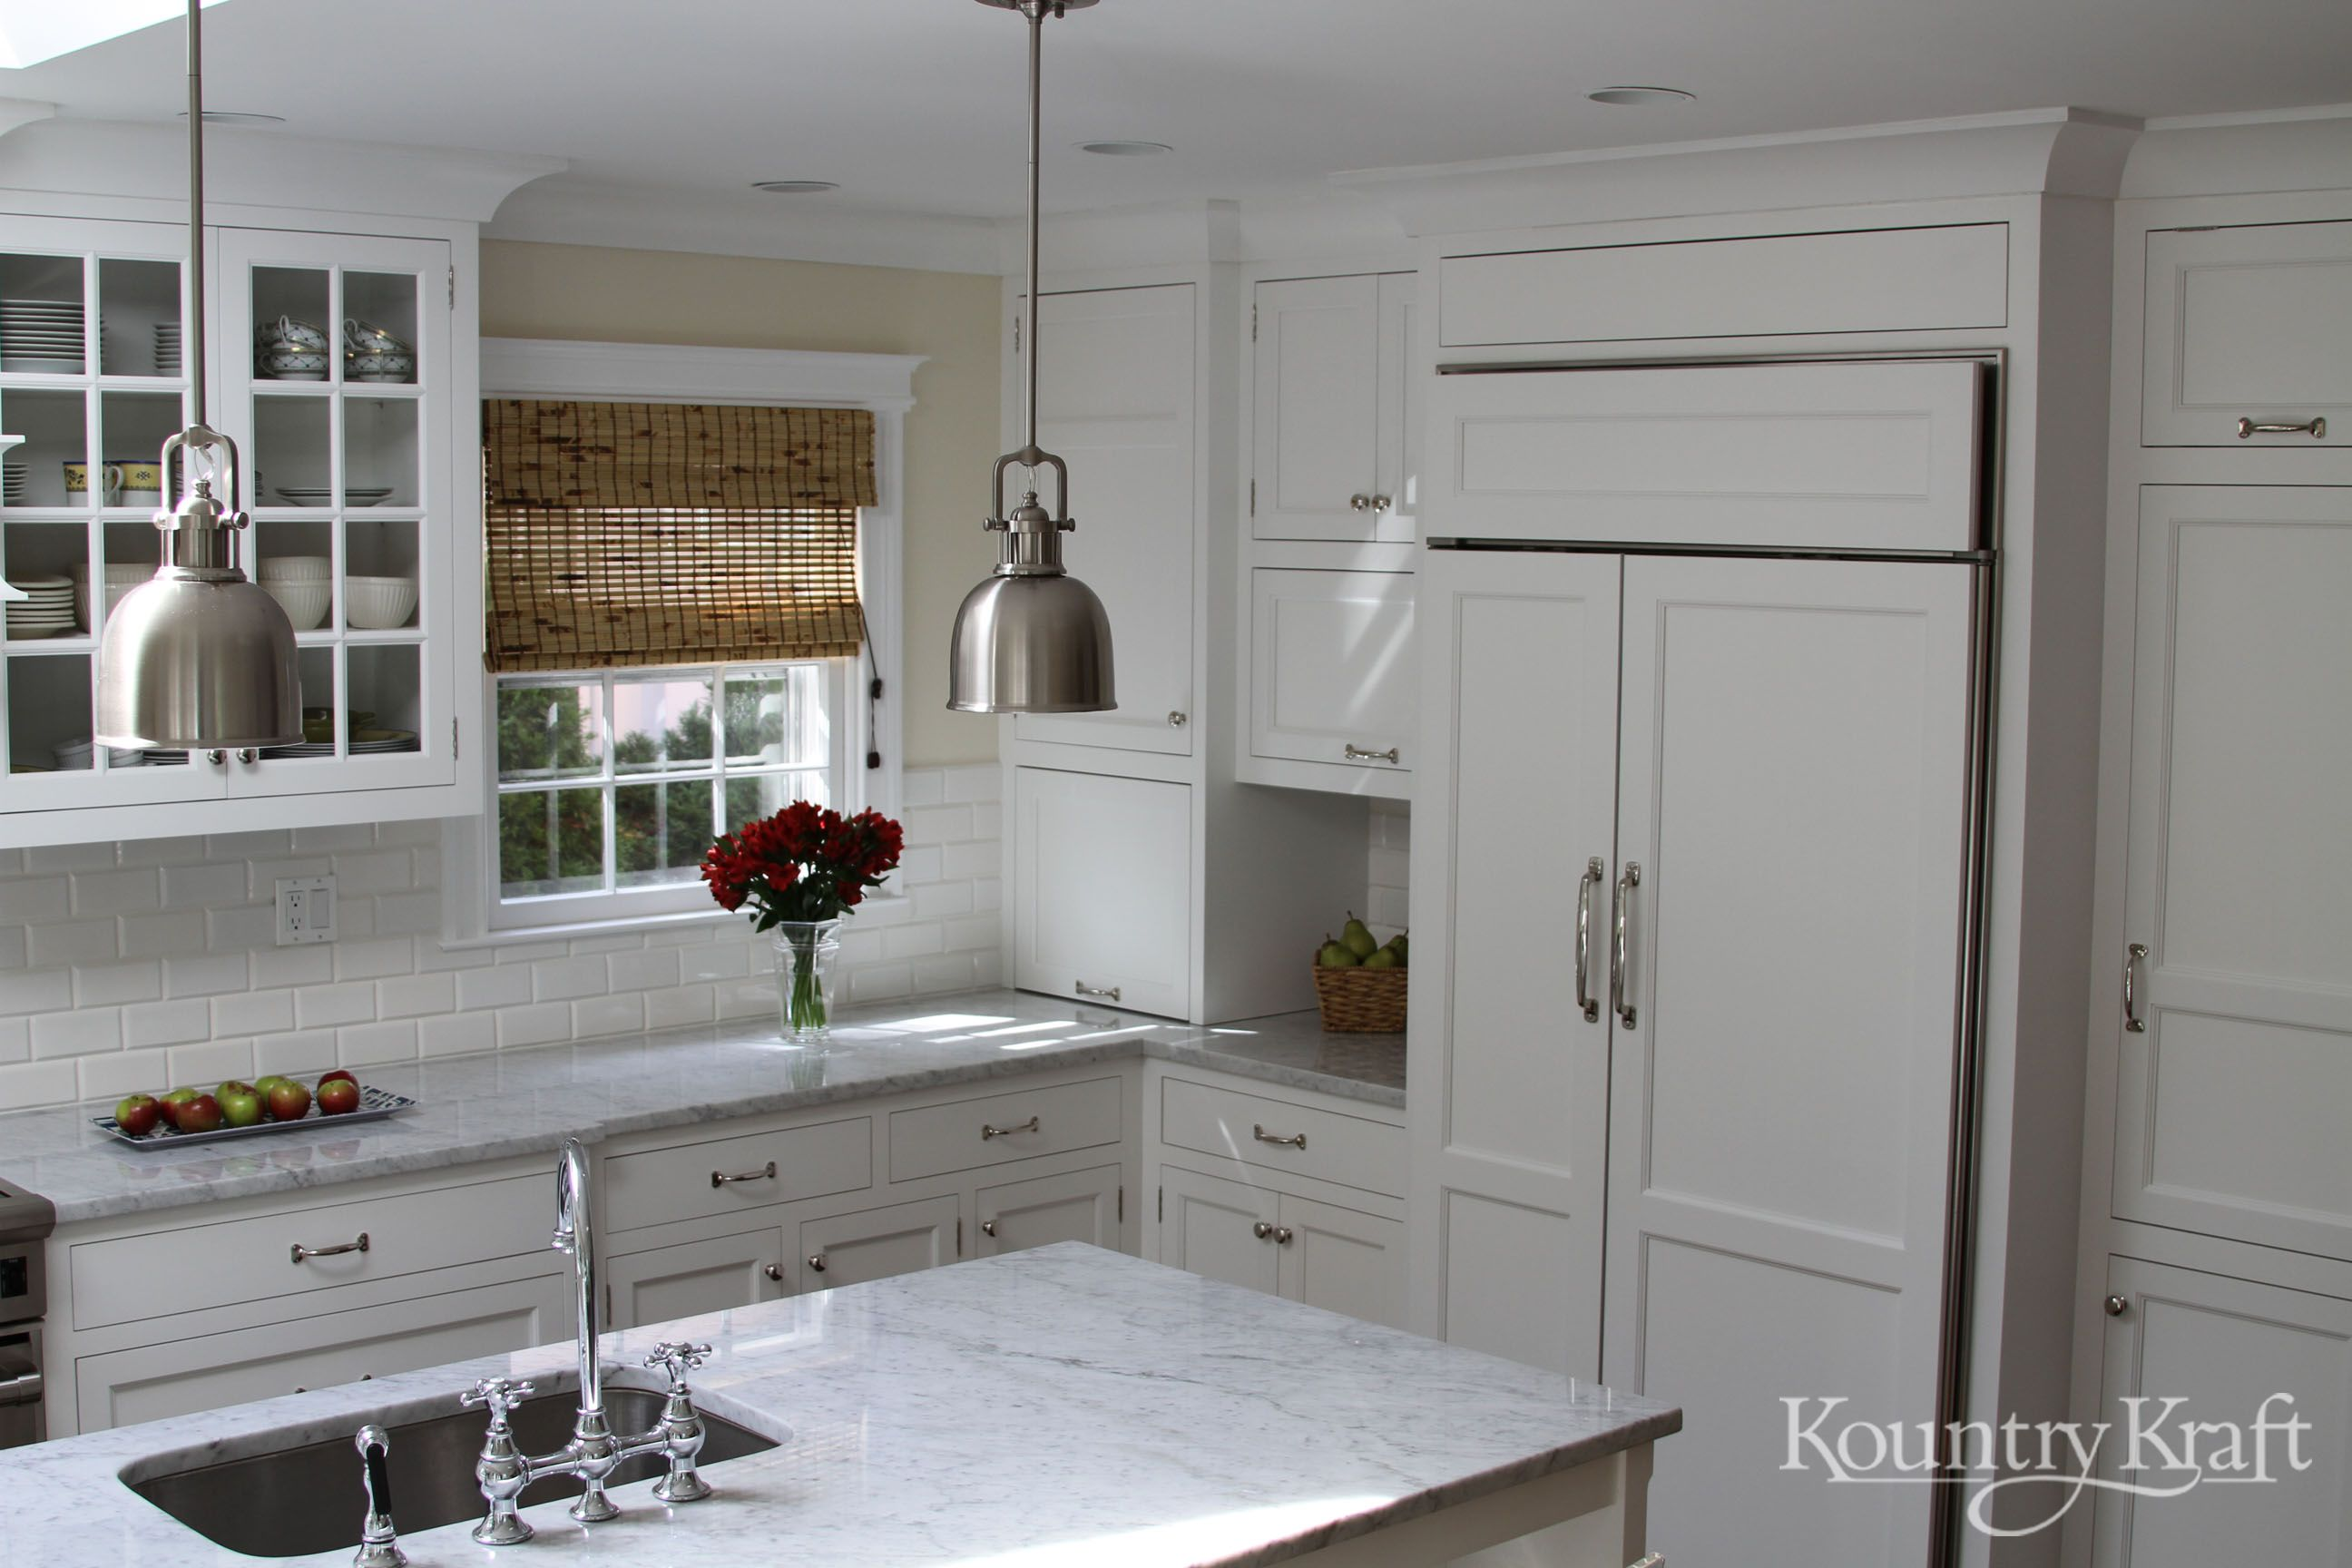 kitchen design bradford. Custom Kitchen Cabinets Designedbradford Design Llc In Interesting  Bradford Inspiration On Avon